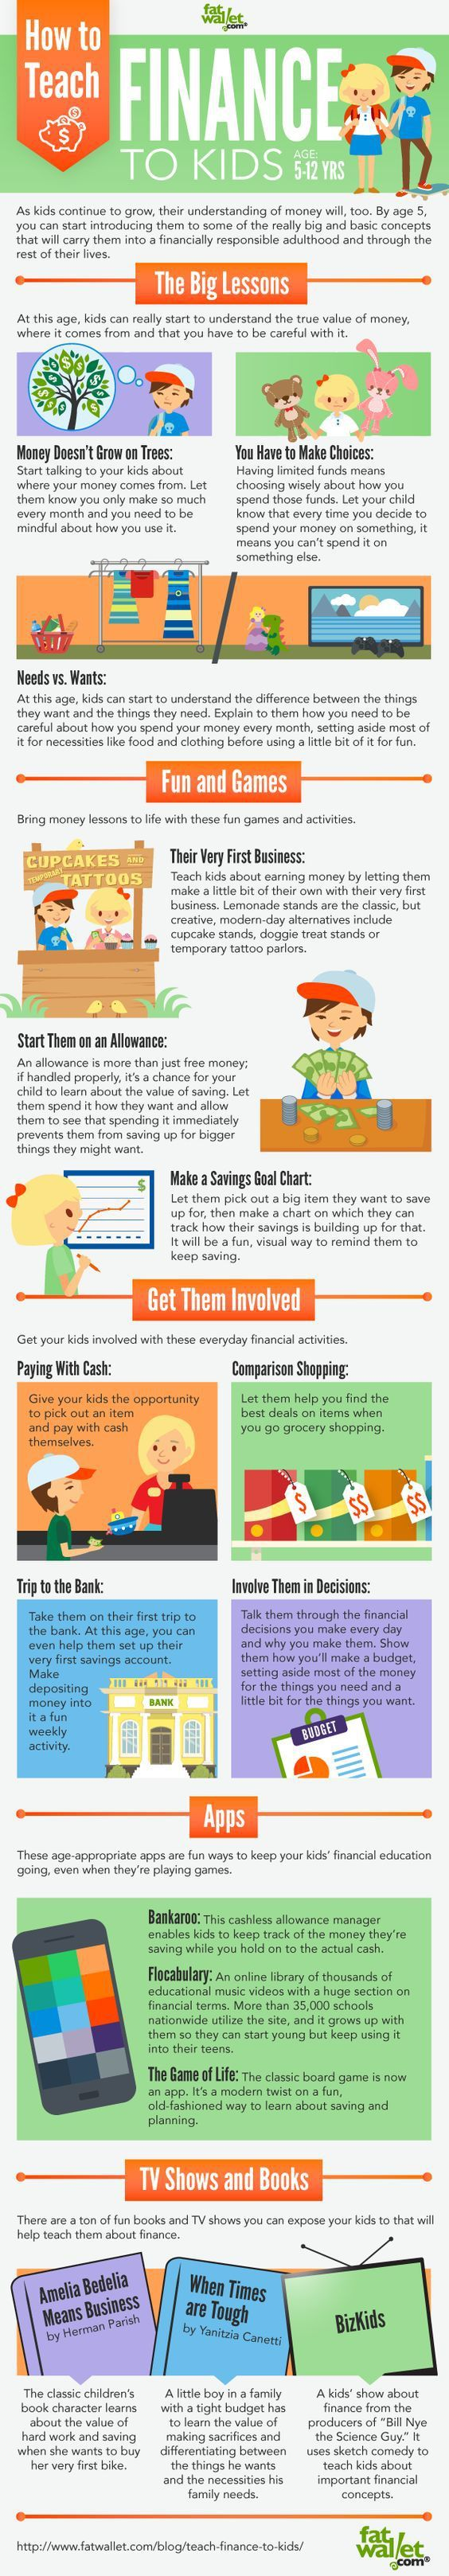 Pinterest Parenting Charts - The Best Pinterest Charts for Moms